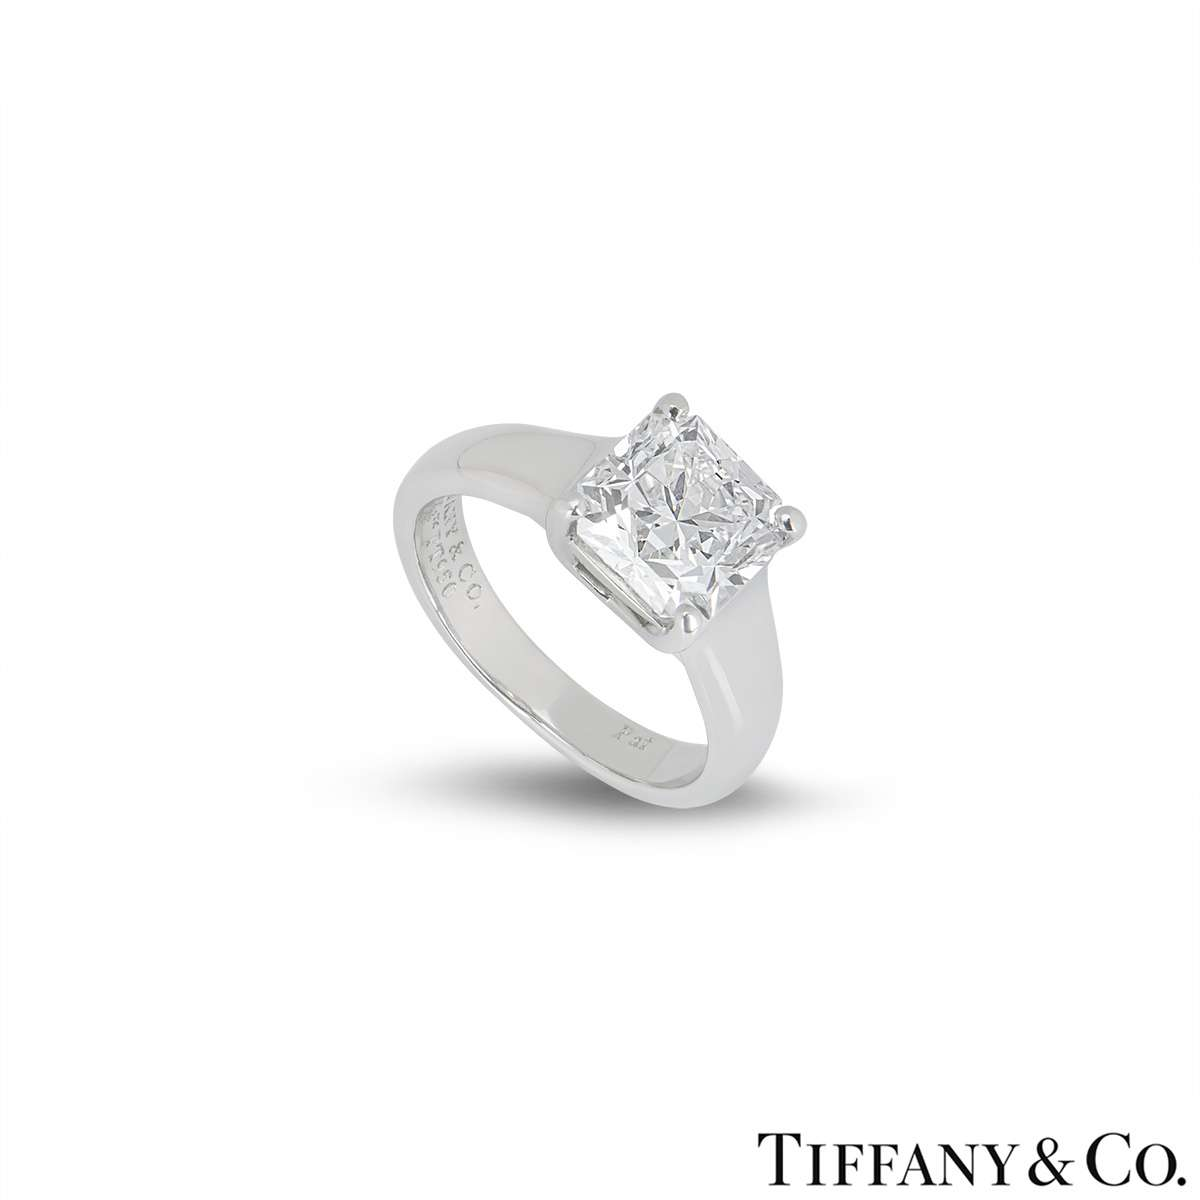 lucida diamond shop engagement false subsampling cut product co tiffany ring crop upscale scale the square